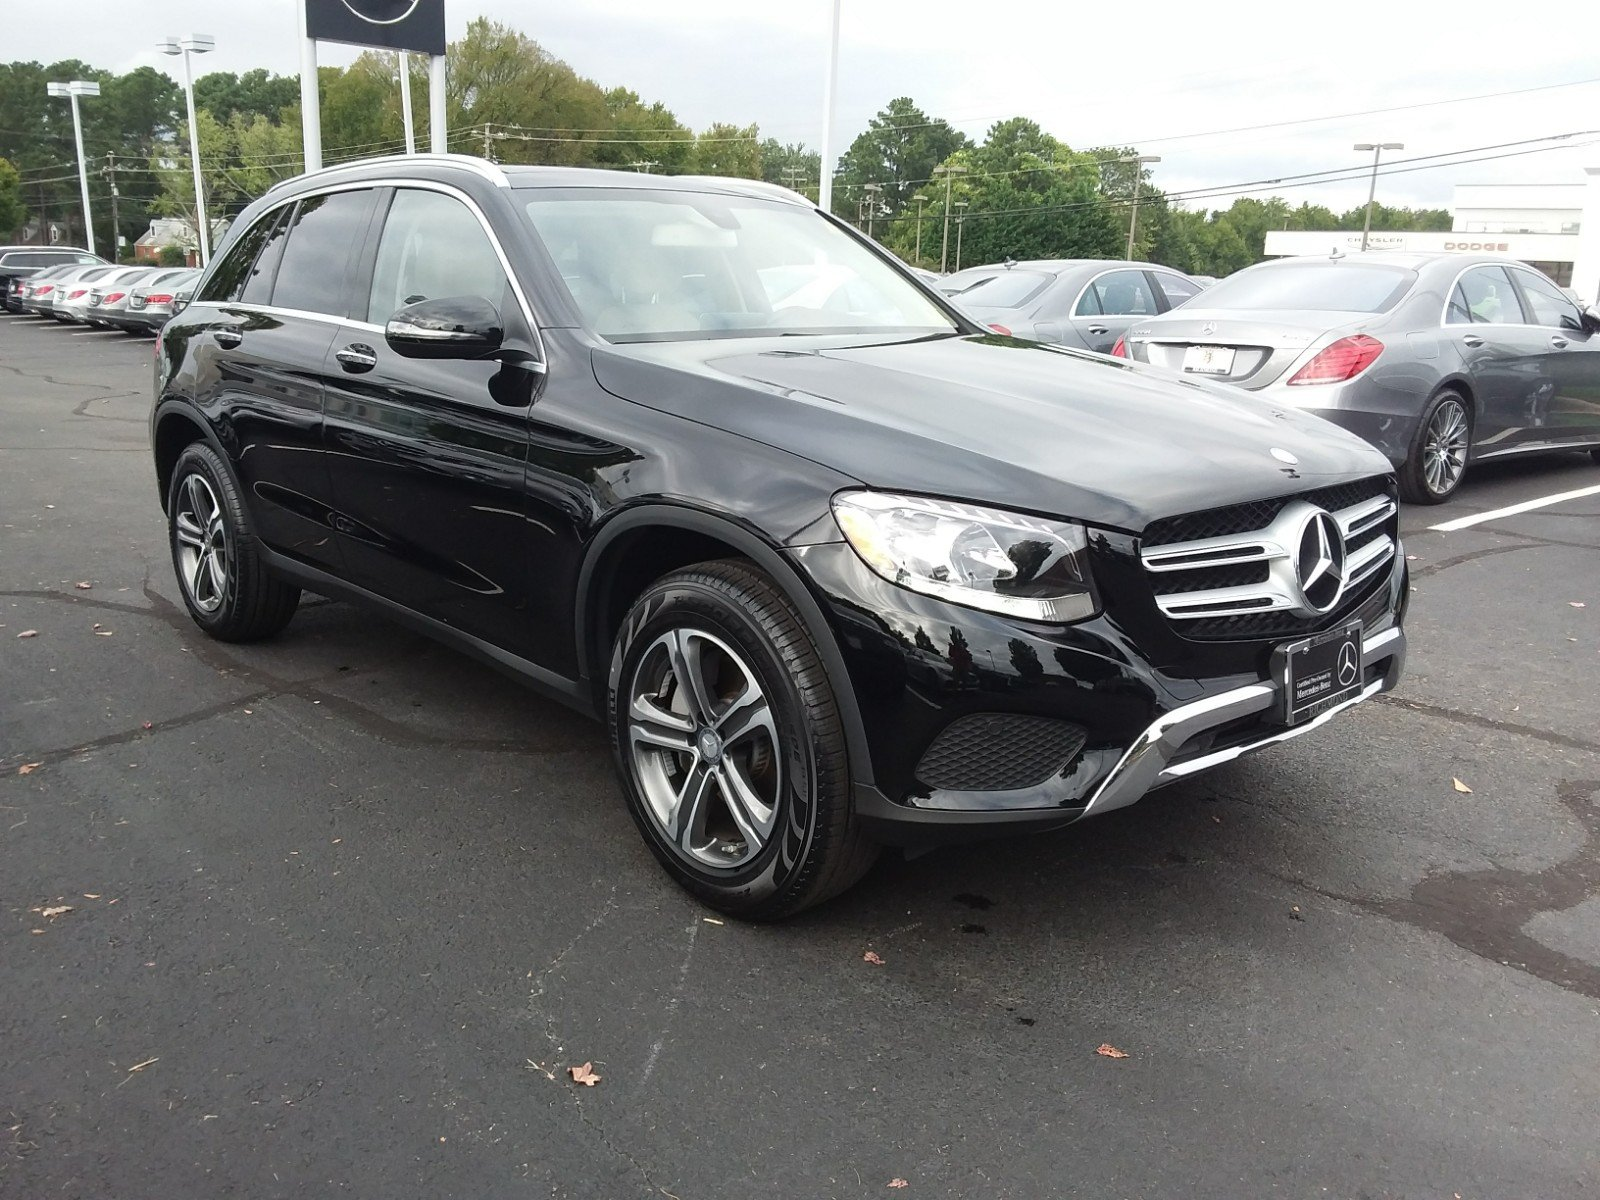 Certified Pre Owned 2016 Mercedes Benz GLC GLC 300 SUV in Richmond